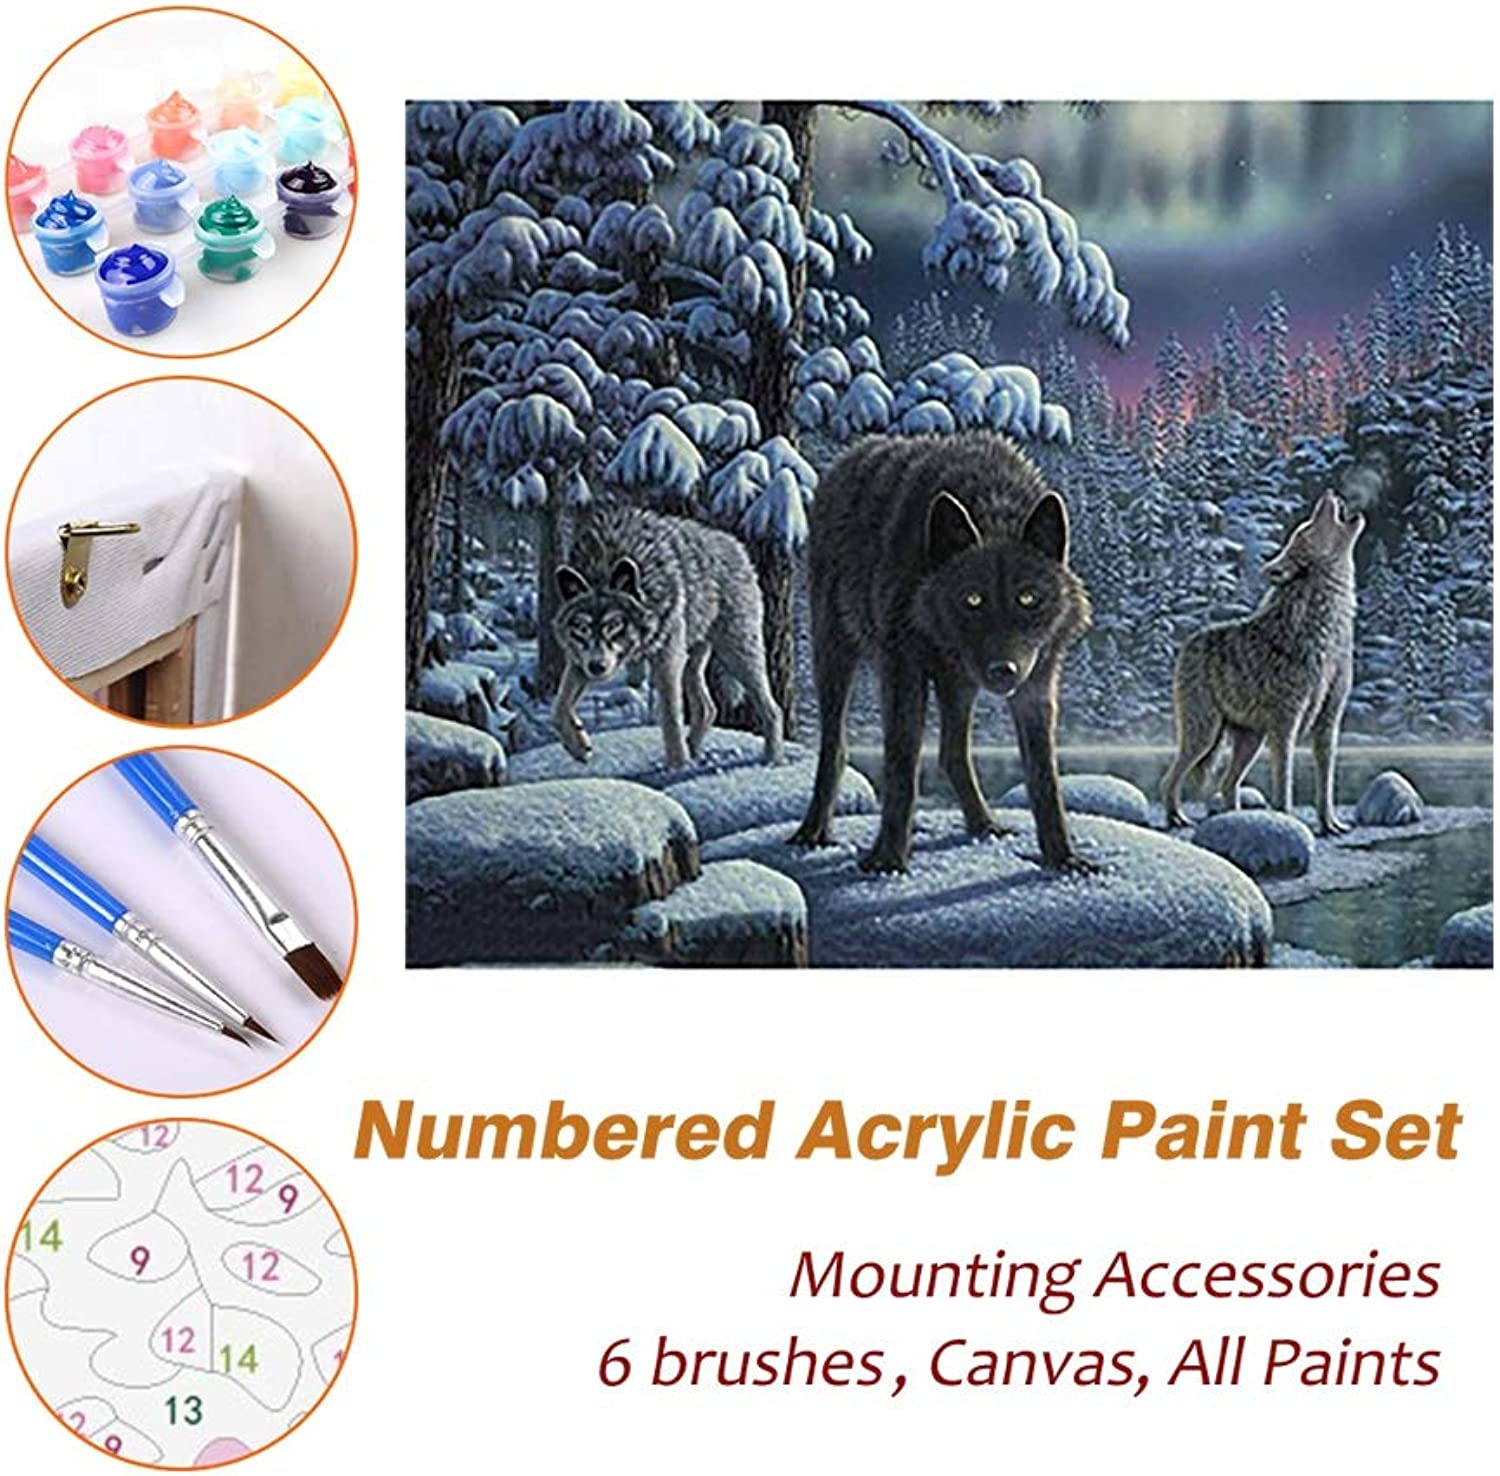 Puzzle House Paint Max Paint By Numbers Kits For Kids Adults Beginner Teens Pine Framed DIY Oil Acrylic Painting Paint Art Brush Sets, Three Wolfs 531 (color   With Pine Frame, Size   500mm x 650mm)